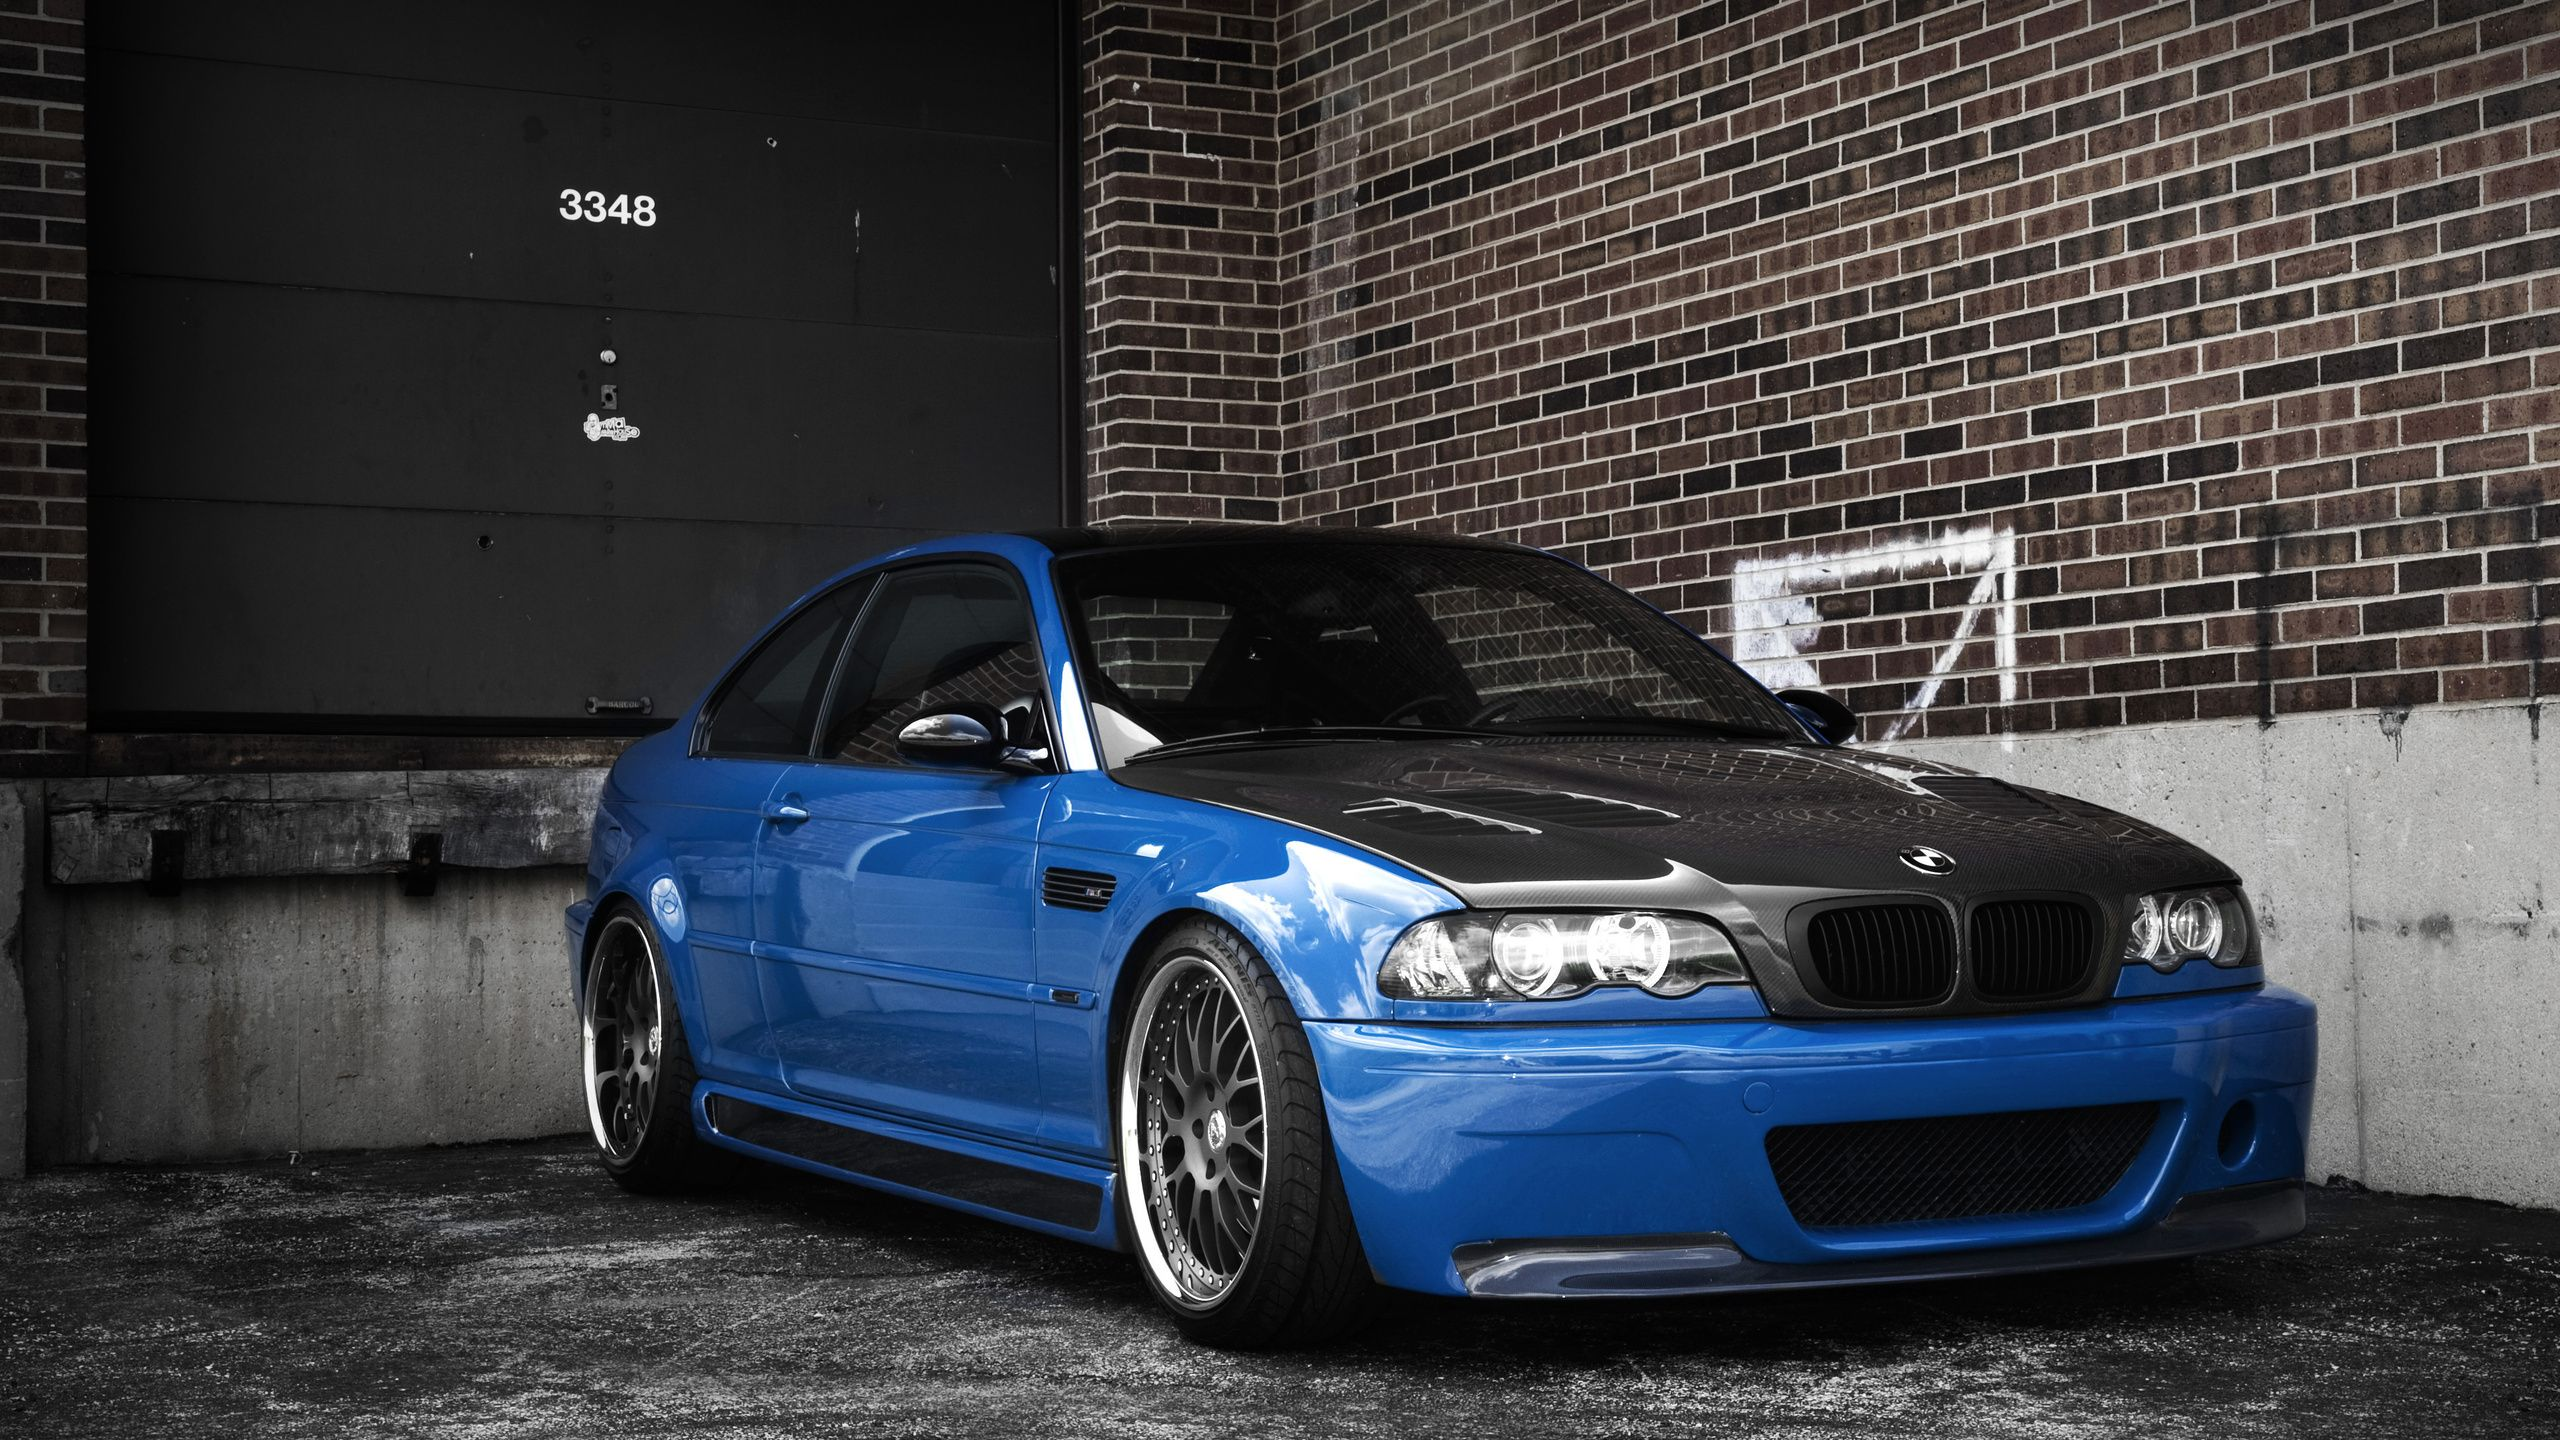 Bmw e46 m3 m series pinterest e46 m3 bmw e46 and bmw figured id collect all my bmw wallpapers in one album to share with others voltagebd Gallery